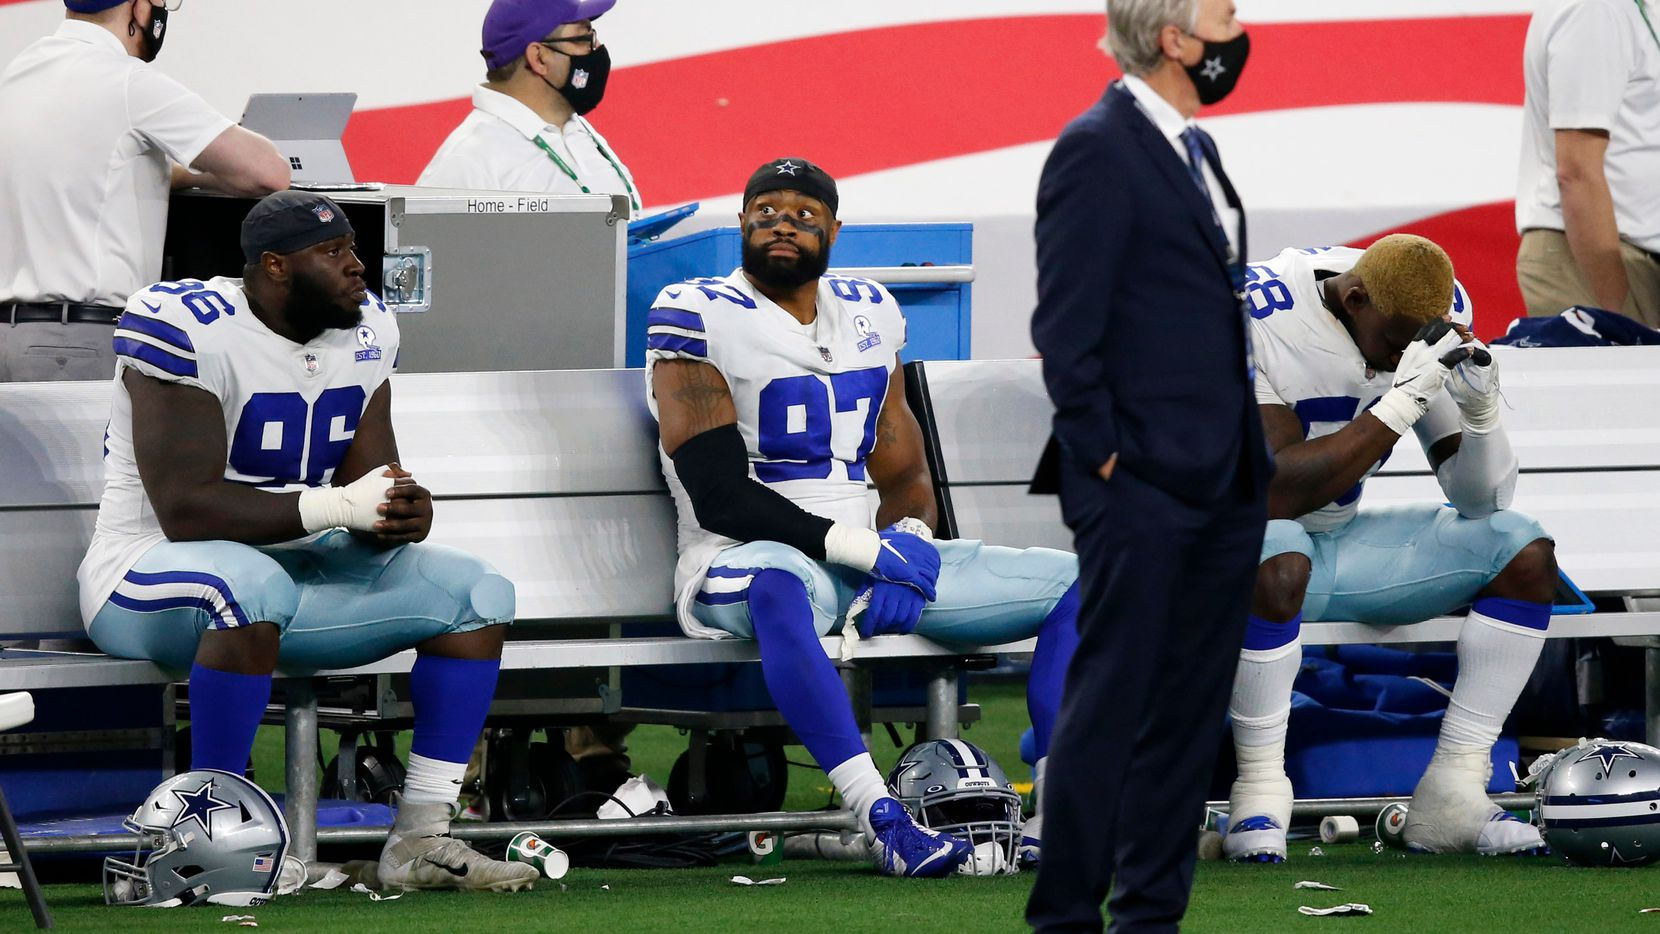 Dallas Cowboys defensive tackle Neville Gallimore (96), Dallas Cowboys defensive end Everson Griffen (97) and Dallas Cowboys defensive end Aldon Smith (58) sit on the bench late in the fourth quarter of play at AT&T Stadium on Monday, October 19, 2020 in Arlington, Texas.